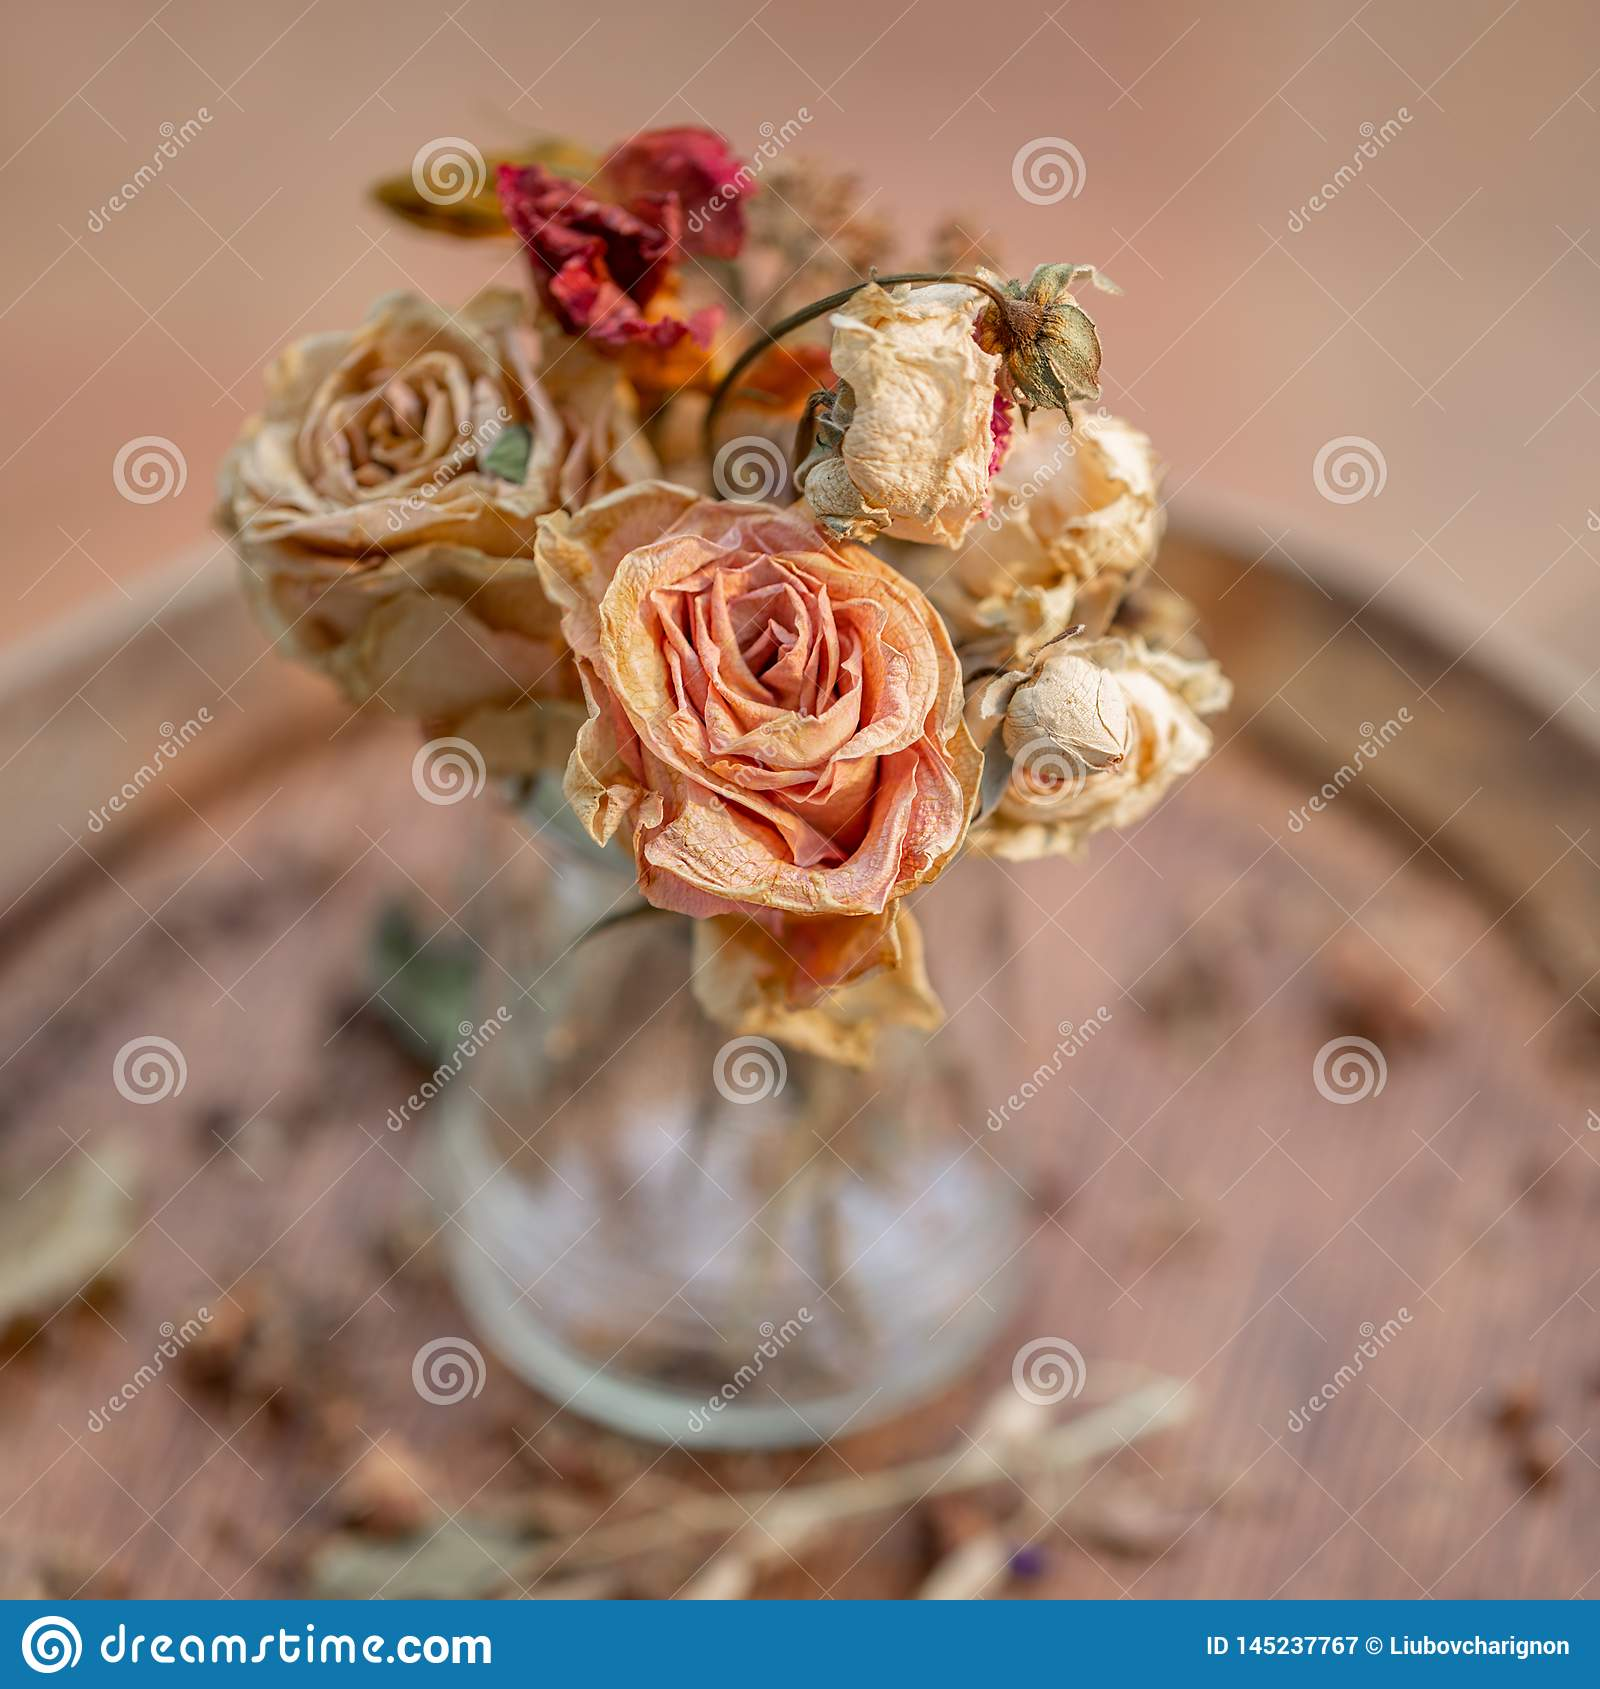 Art photography. Roses withered in a glass vase.